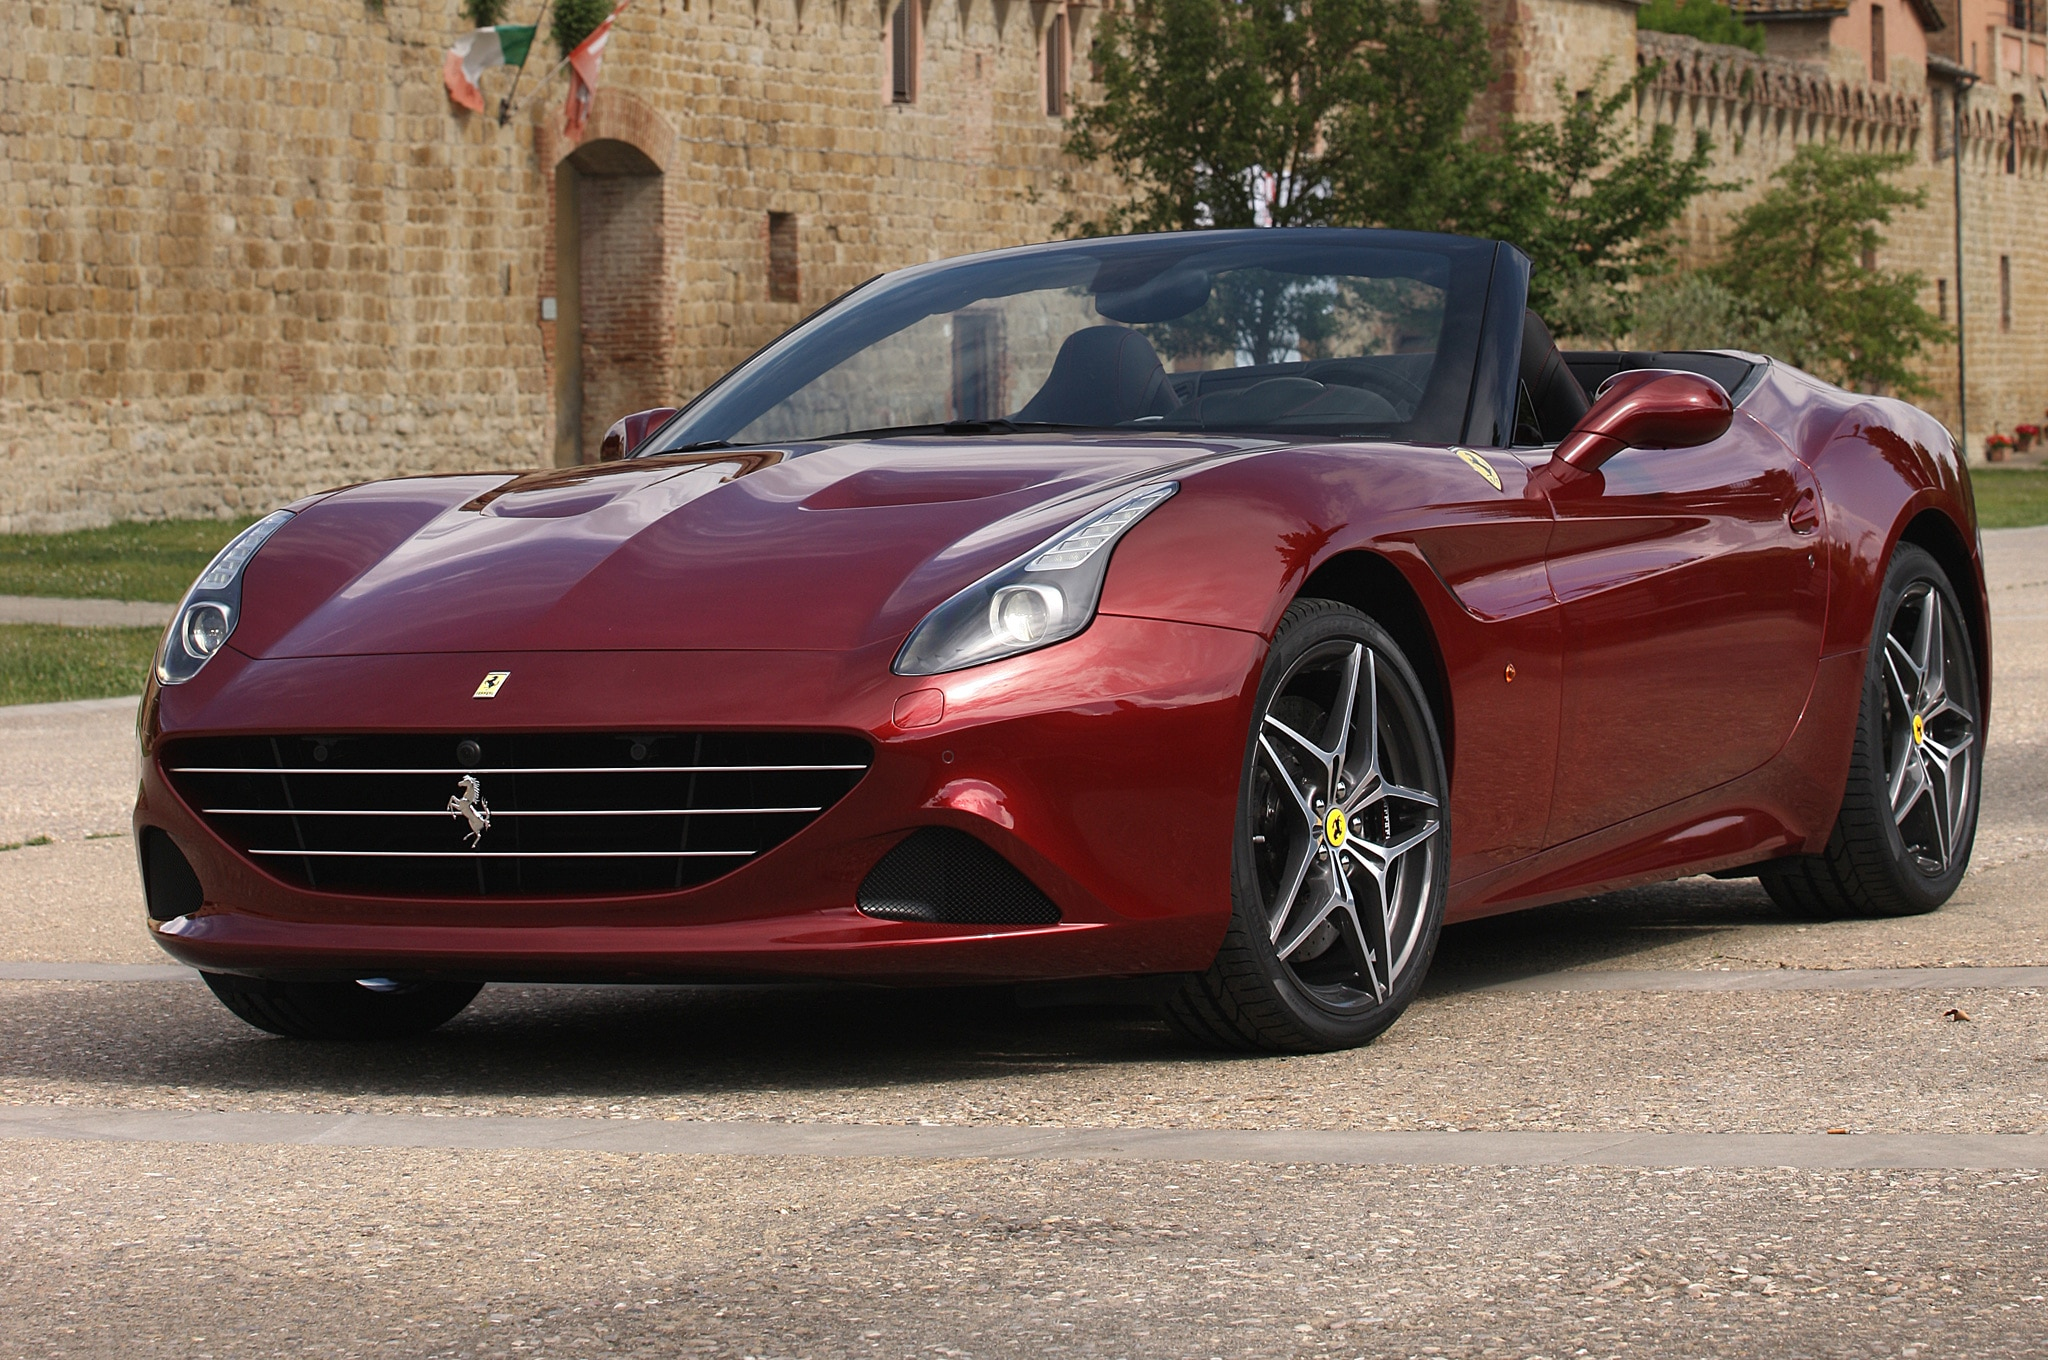 2015 Ferrari California T Front Side View